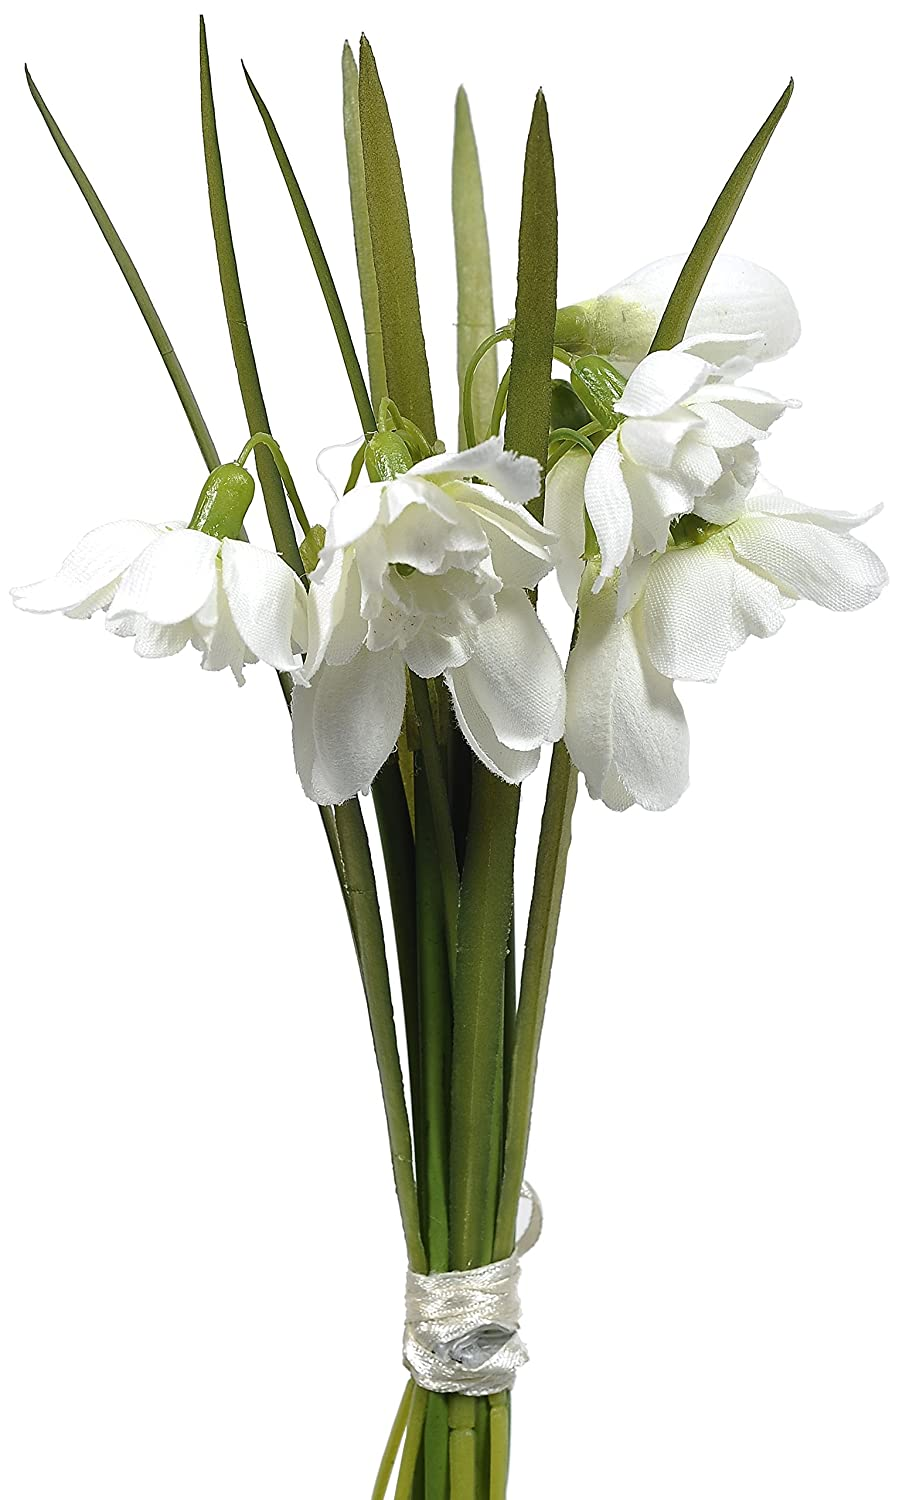 CB Imports Artificial Snowdrop Spring Bundle, White 10291029001339